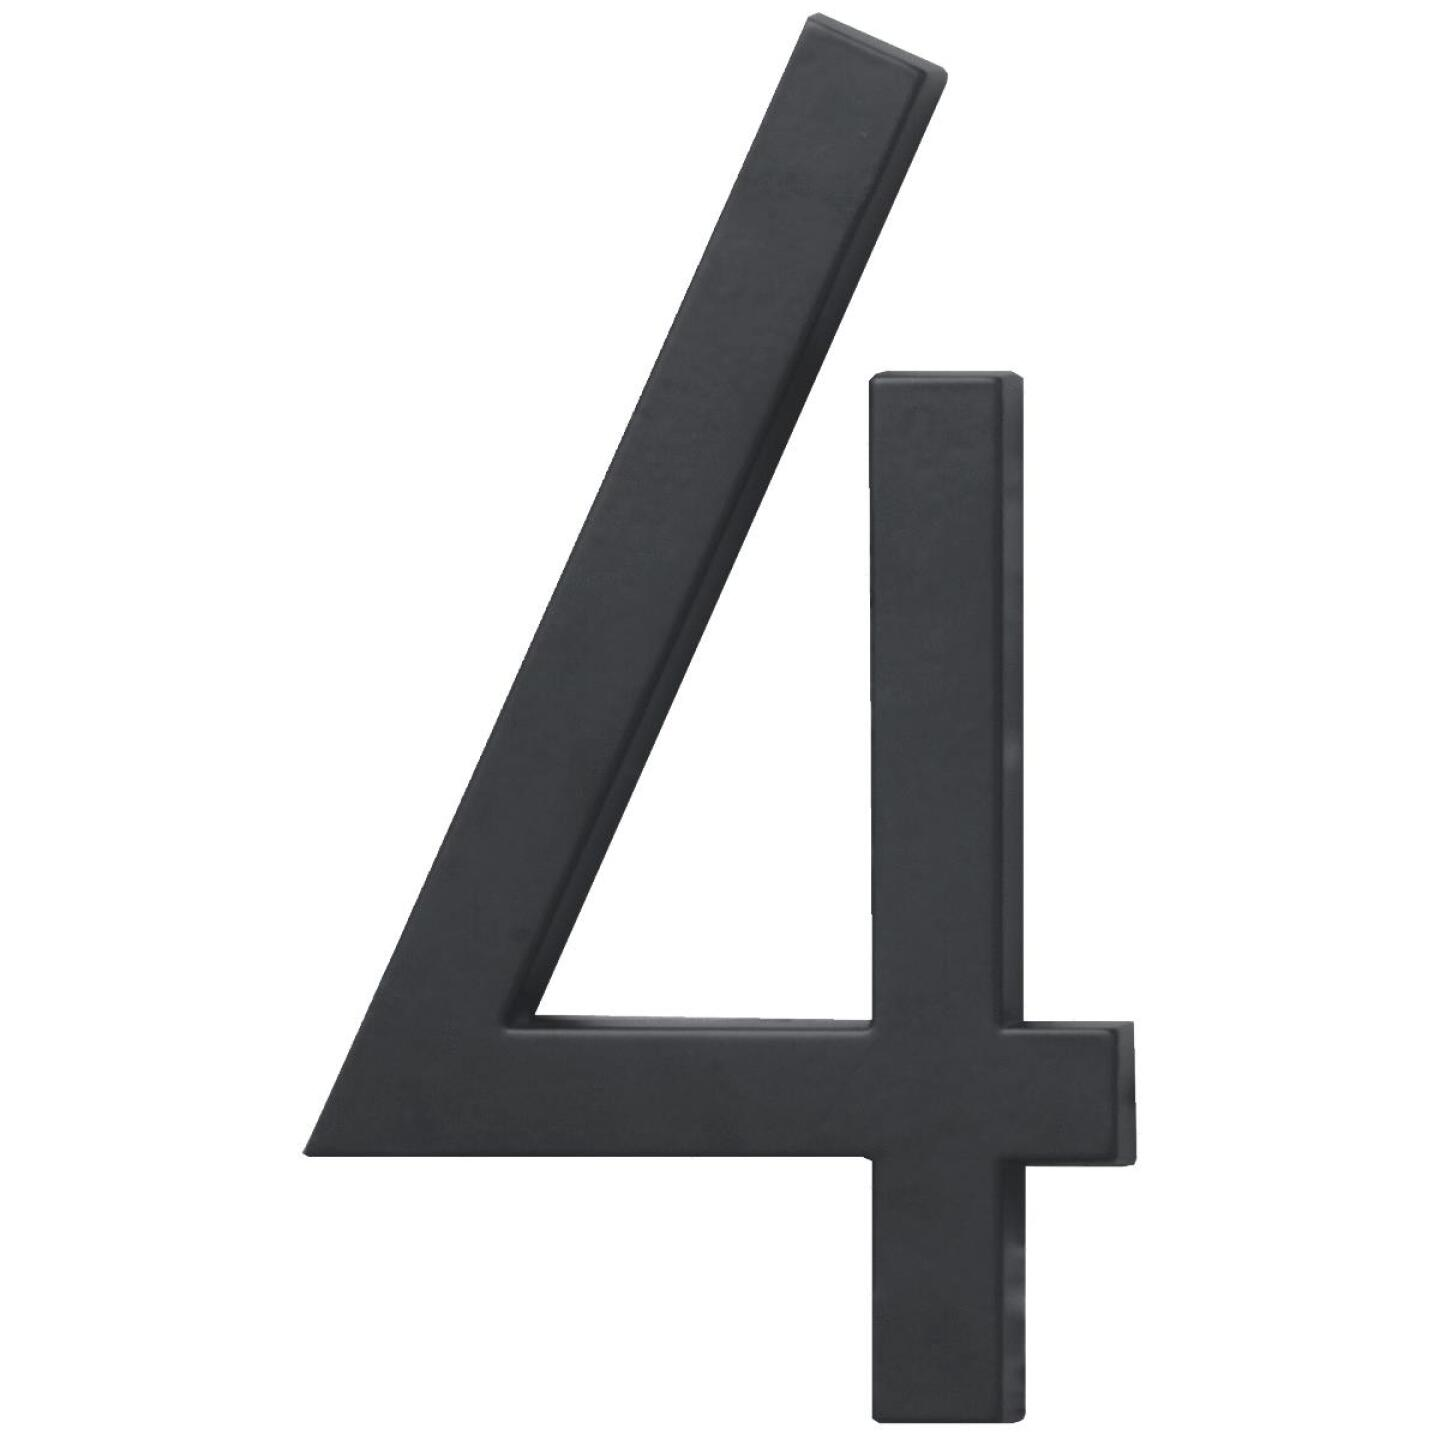 Hy-Ko Architectural Series 6 In. Satin Black House Number Four Image 1